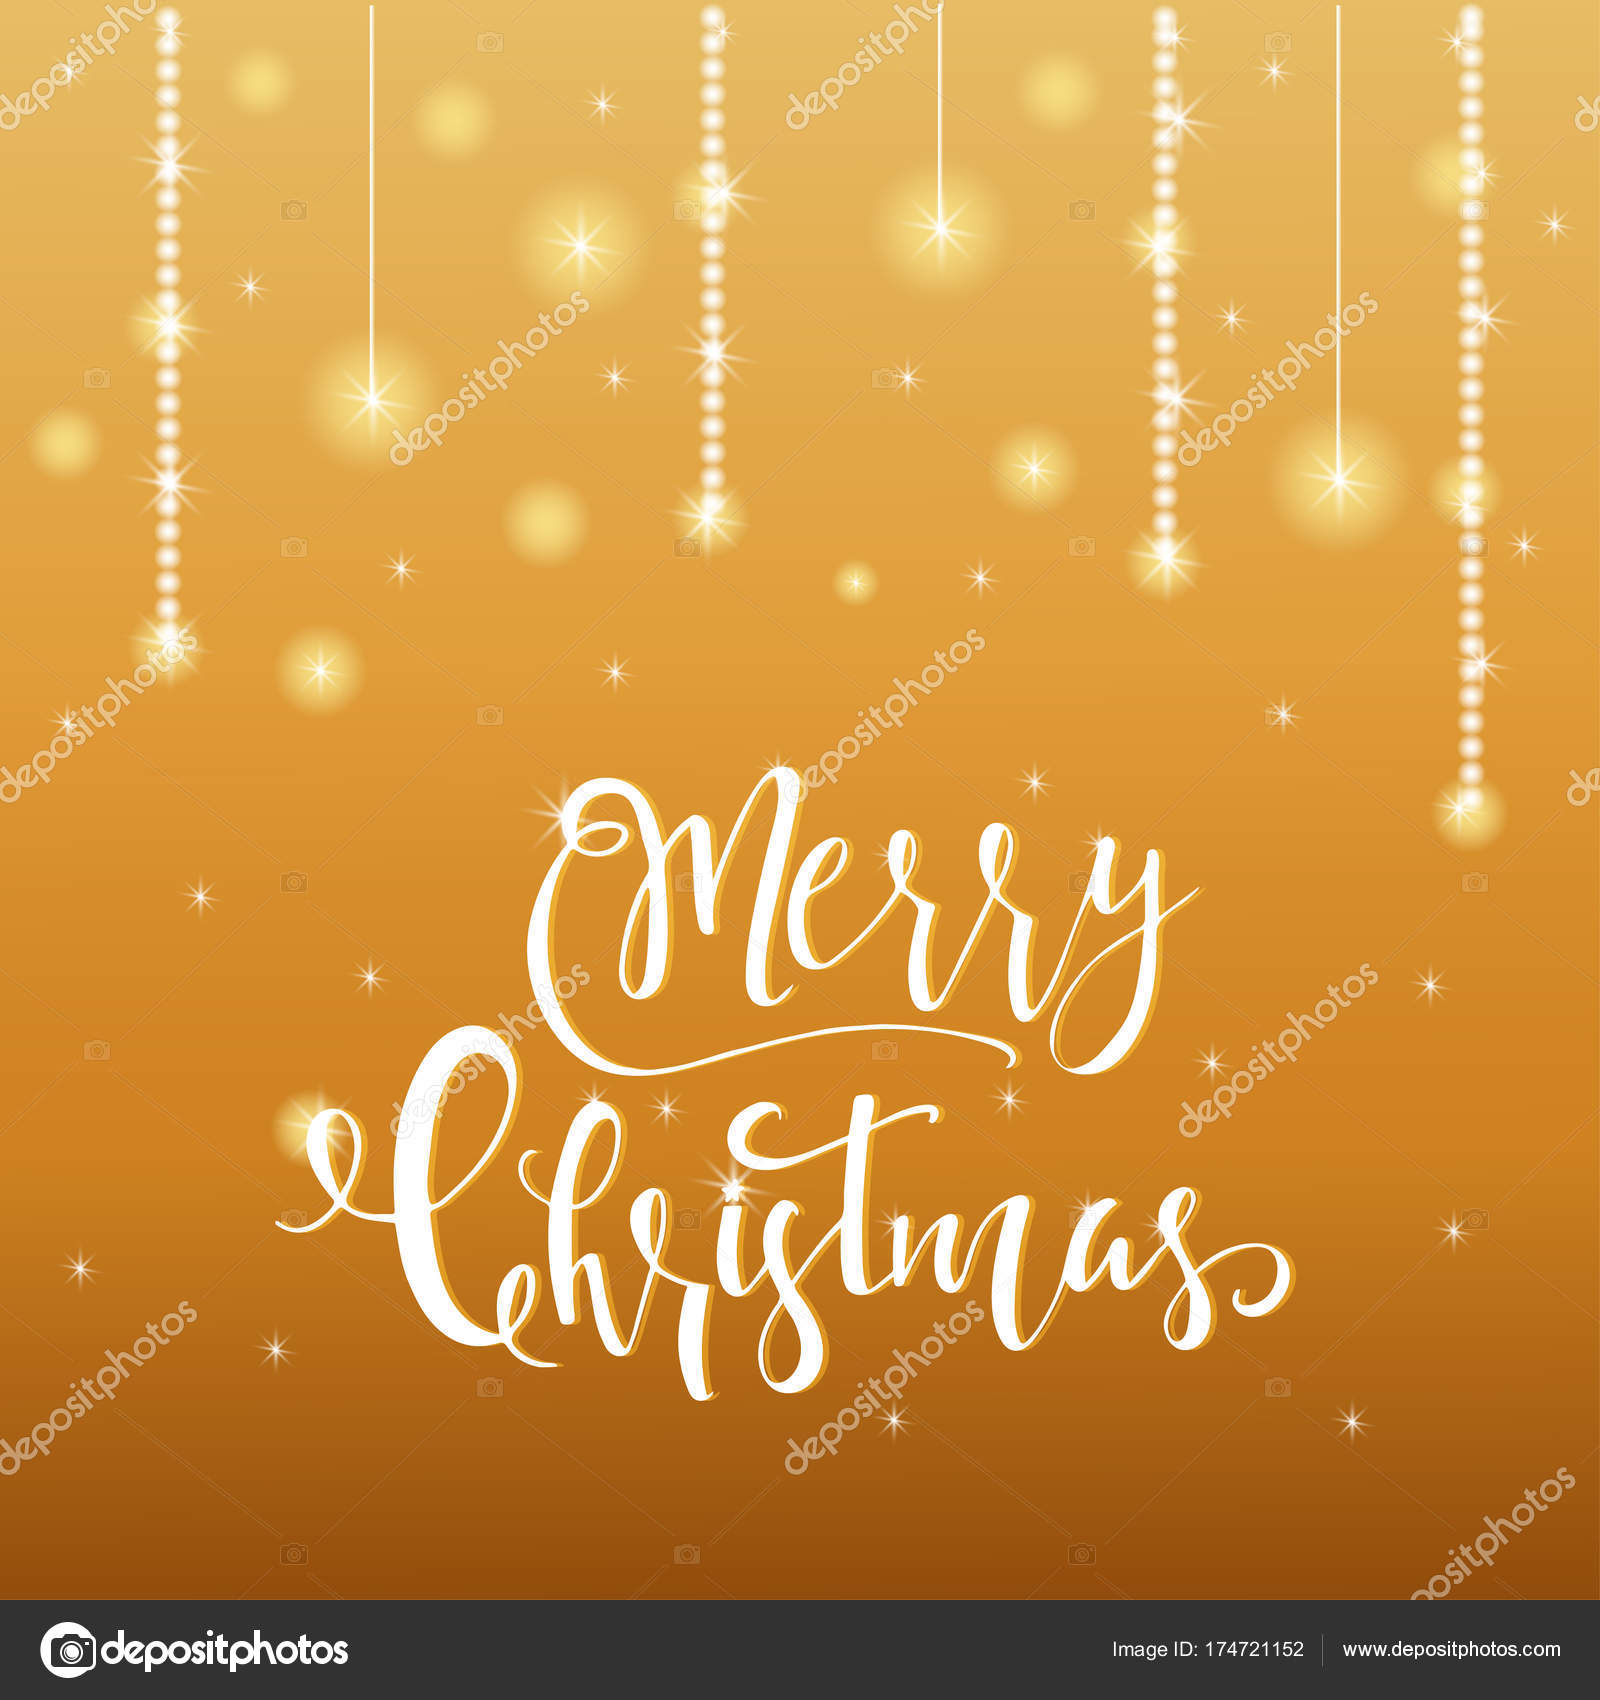 Wonderful Unique Handwritten Christmas Wishes Holiday Greeting Cards